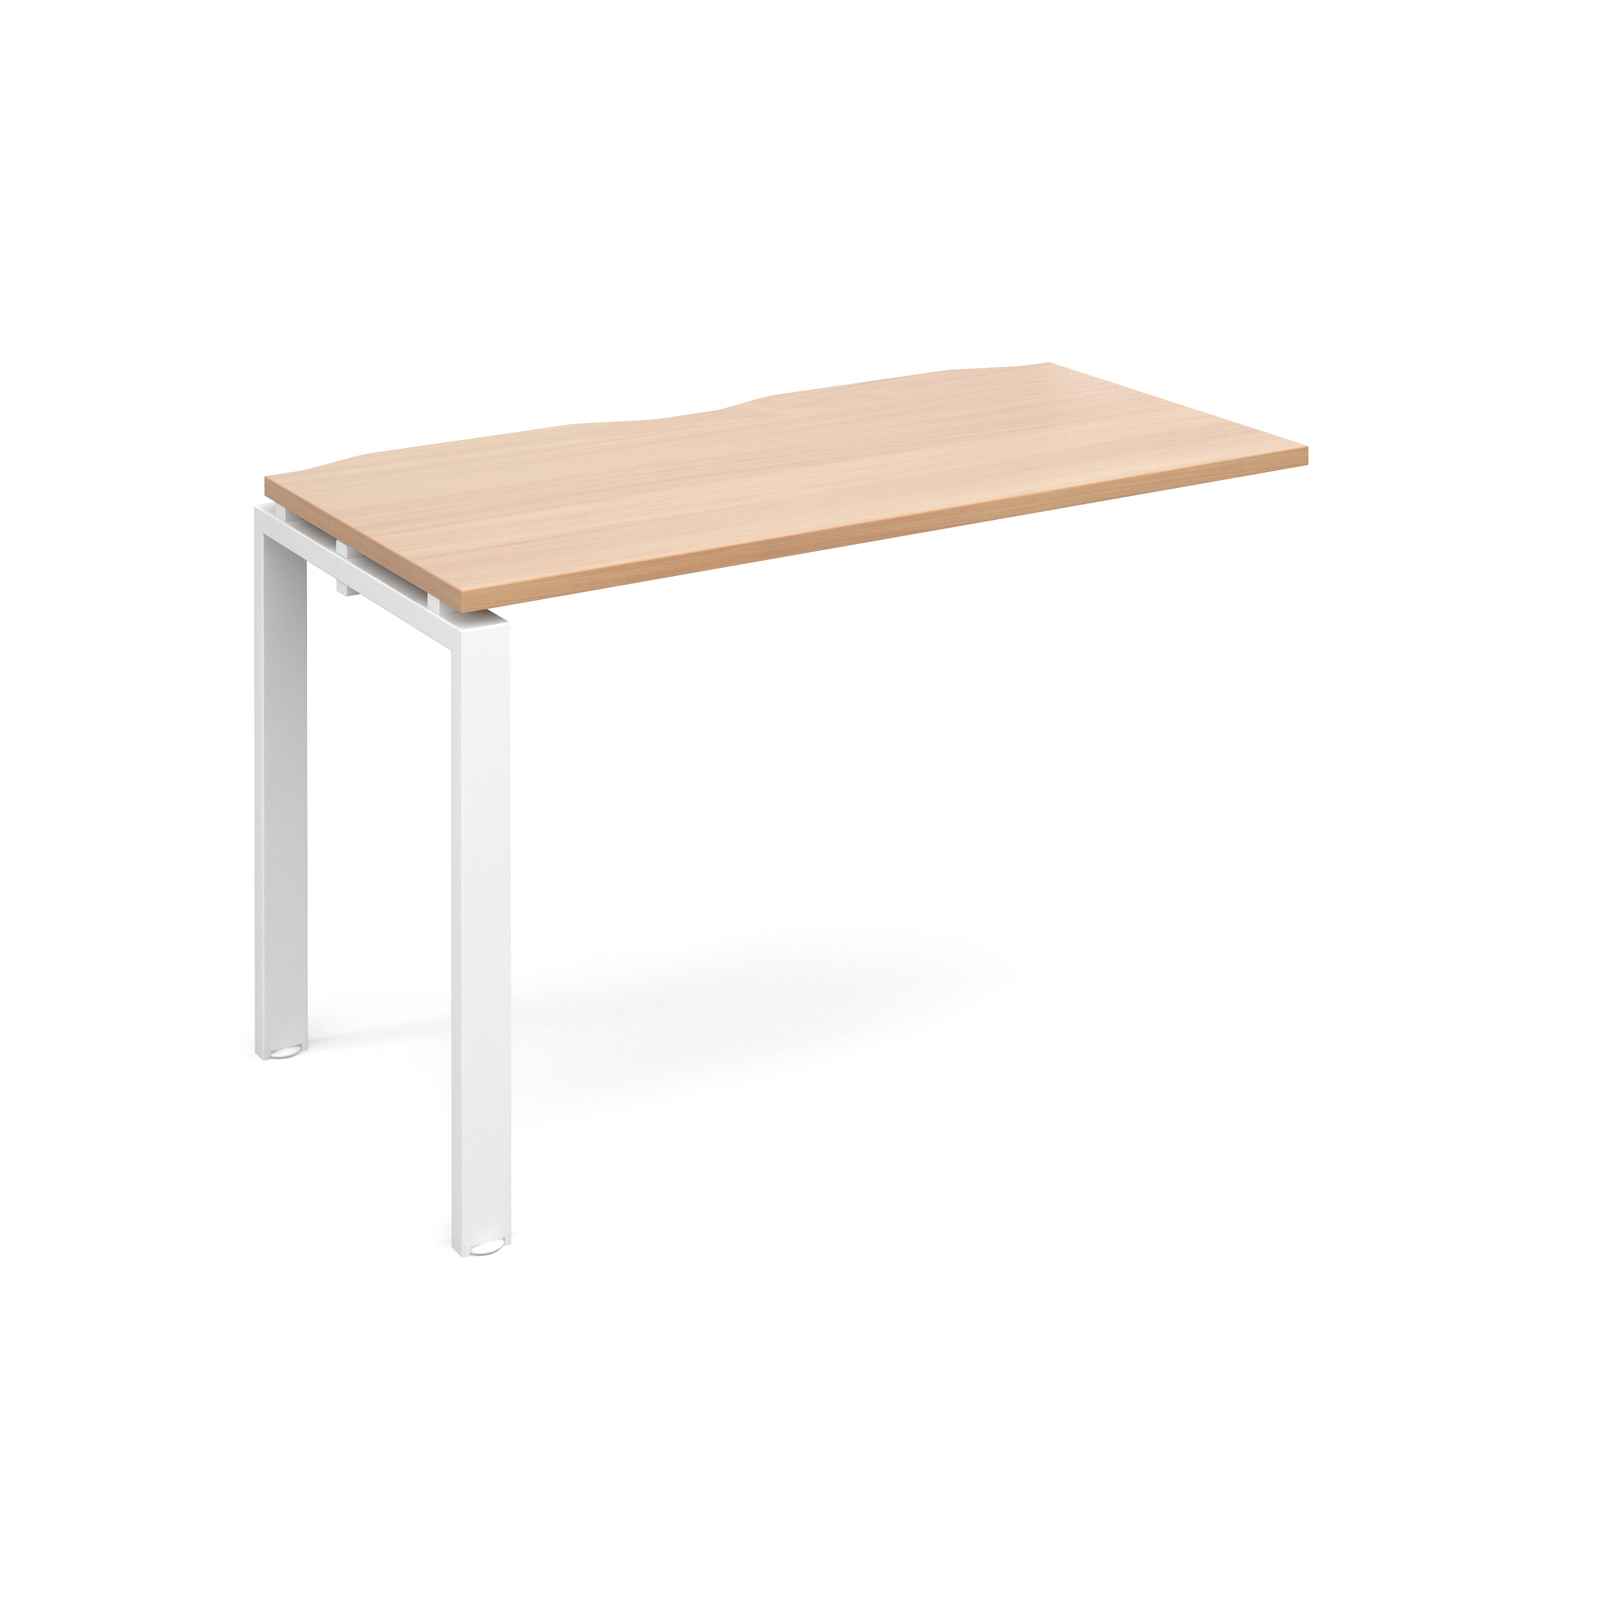 Adapt II 1200 x 600 x 725mm Single Add On Bay - Beech / White Leg